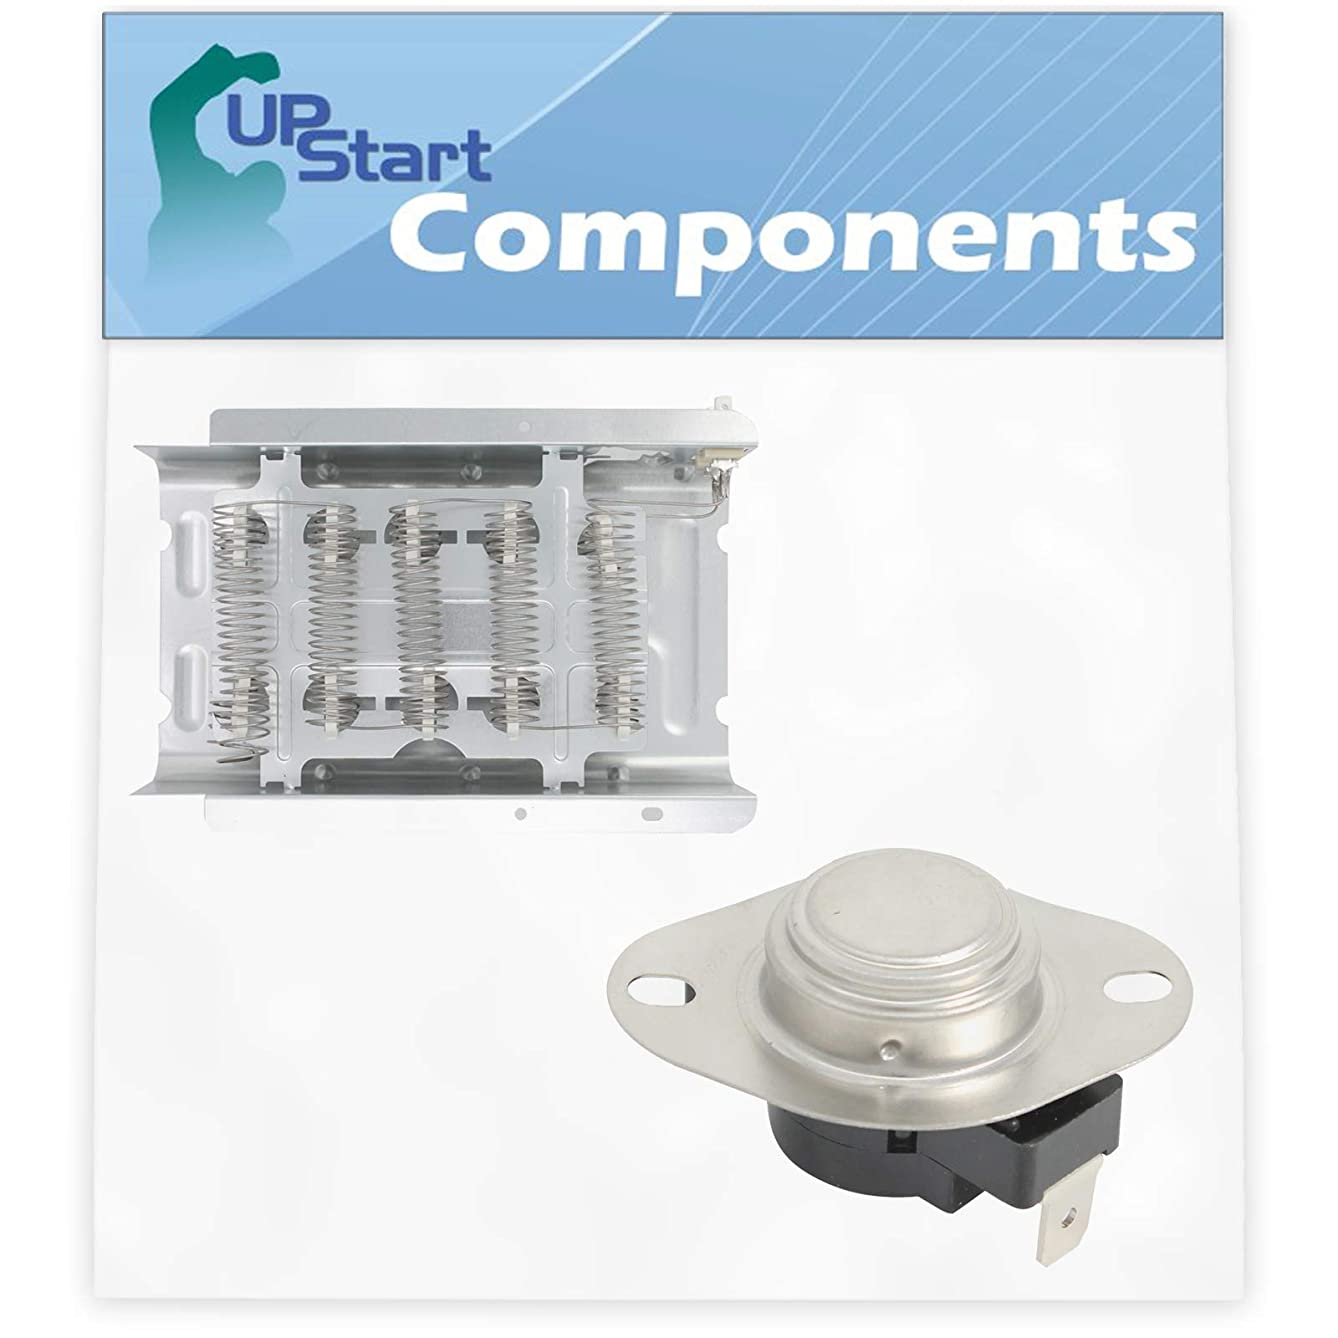 279838 Dryer Heating Element & 3390291 High Limit Thermostat Kit Replacement for Roper REL4634BW3 Dryer - Compatible with 279838 and 3390291 Heater Element and Thermostat Combo Pack